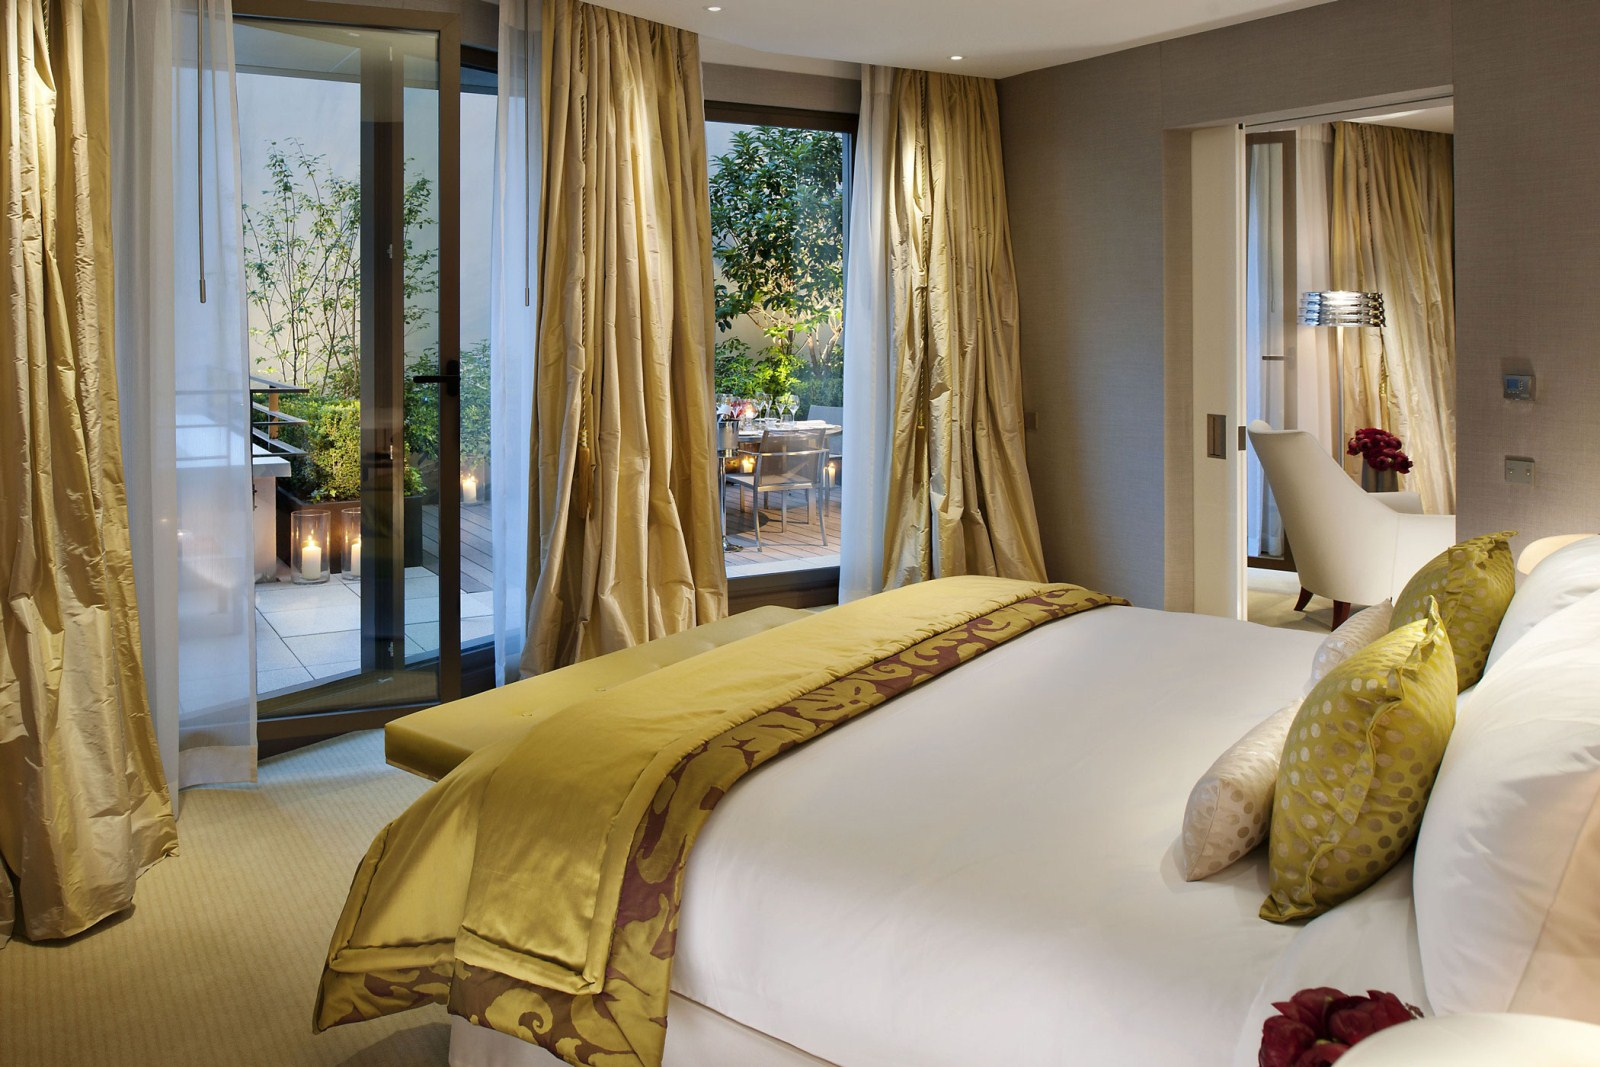 hotels-resorts-beautiful-luxurious-mandarin-oriental-paris-hotel-interior-design-in-french-white-bed-with-yellow-blanket-in-gold-bedroom-theme_f9618